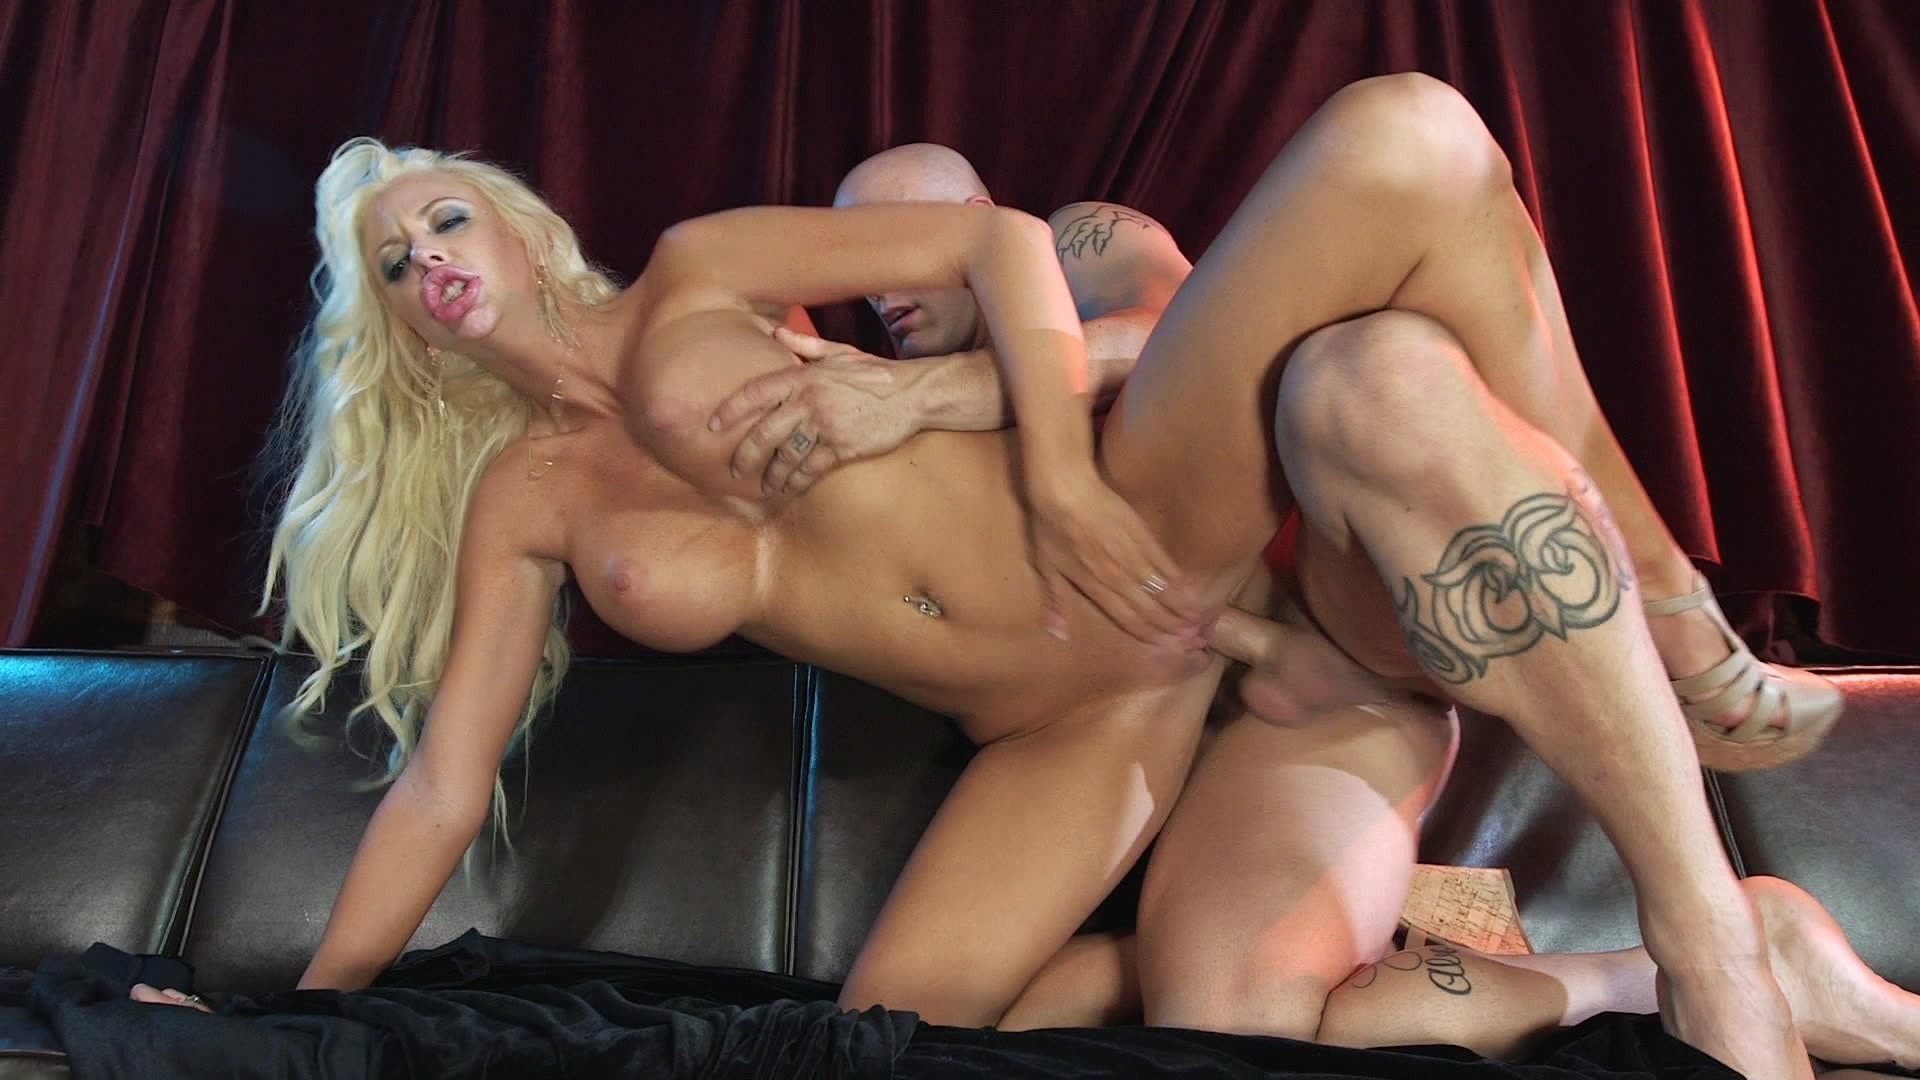 Busty Blonde Courtney Taylor Gets Her Pussy Pounded by Hung Stud Derrick Pierce Starring: Derrick Pierce Courtney Taylor Length: 20 min